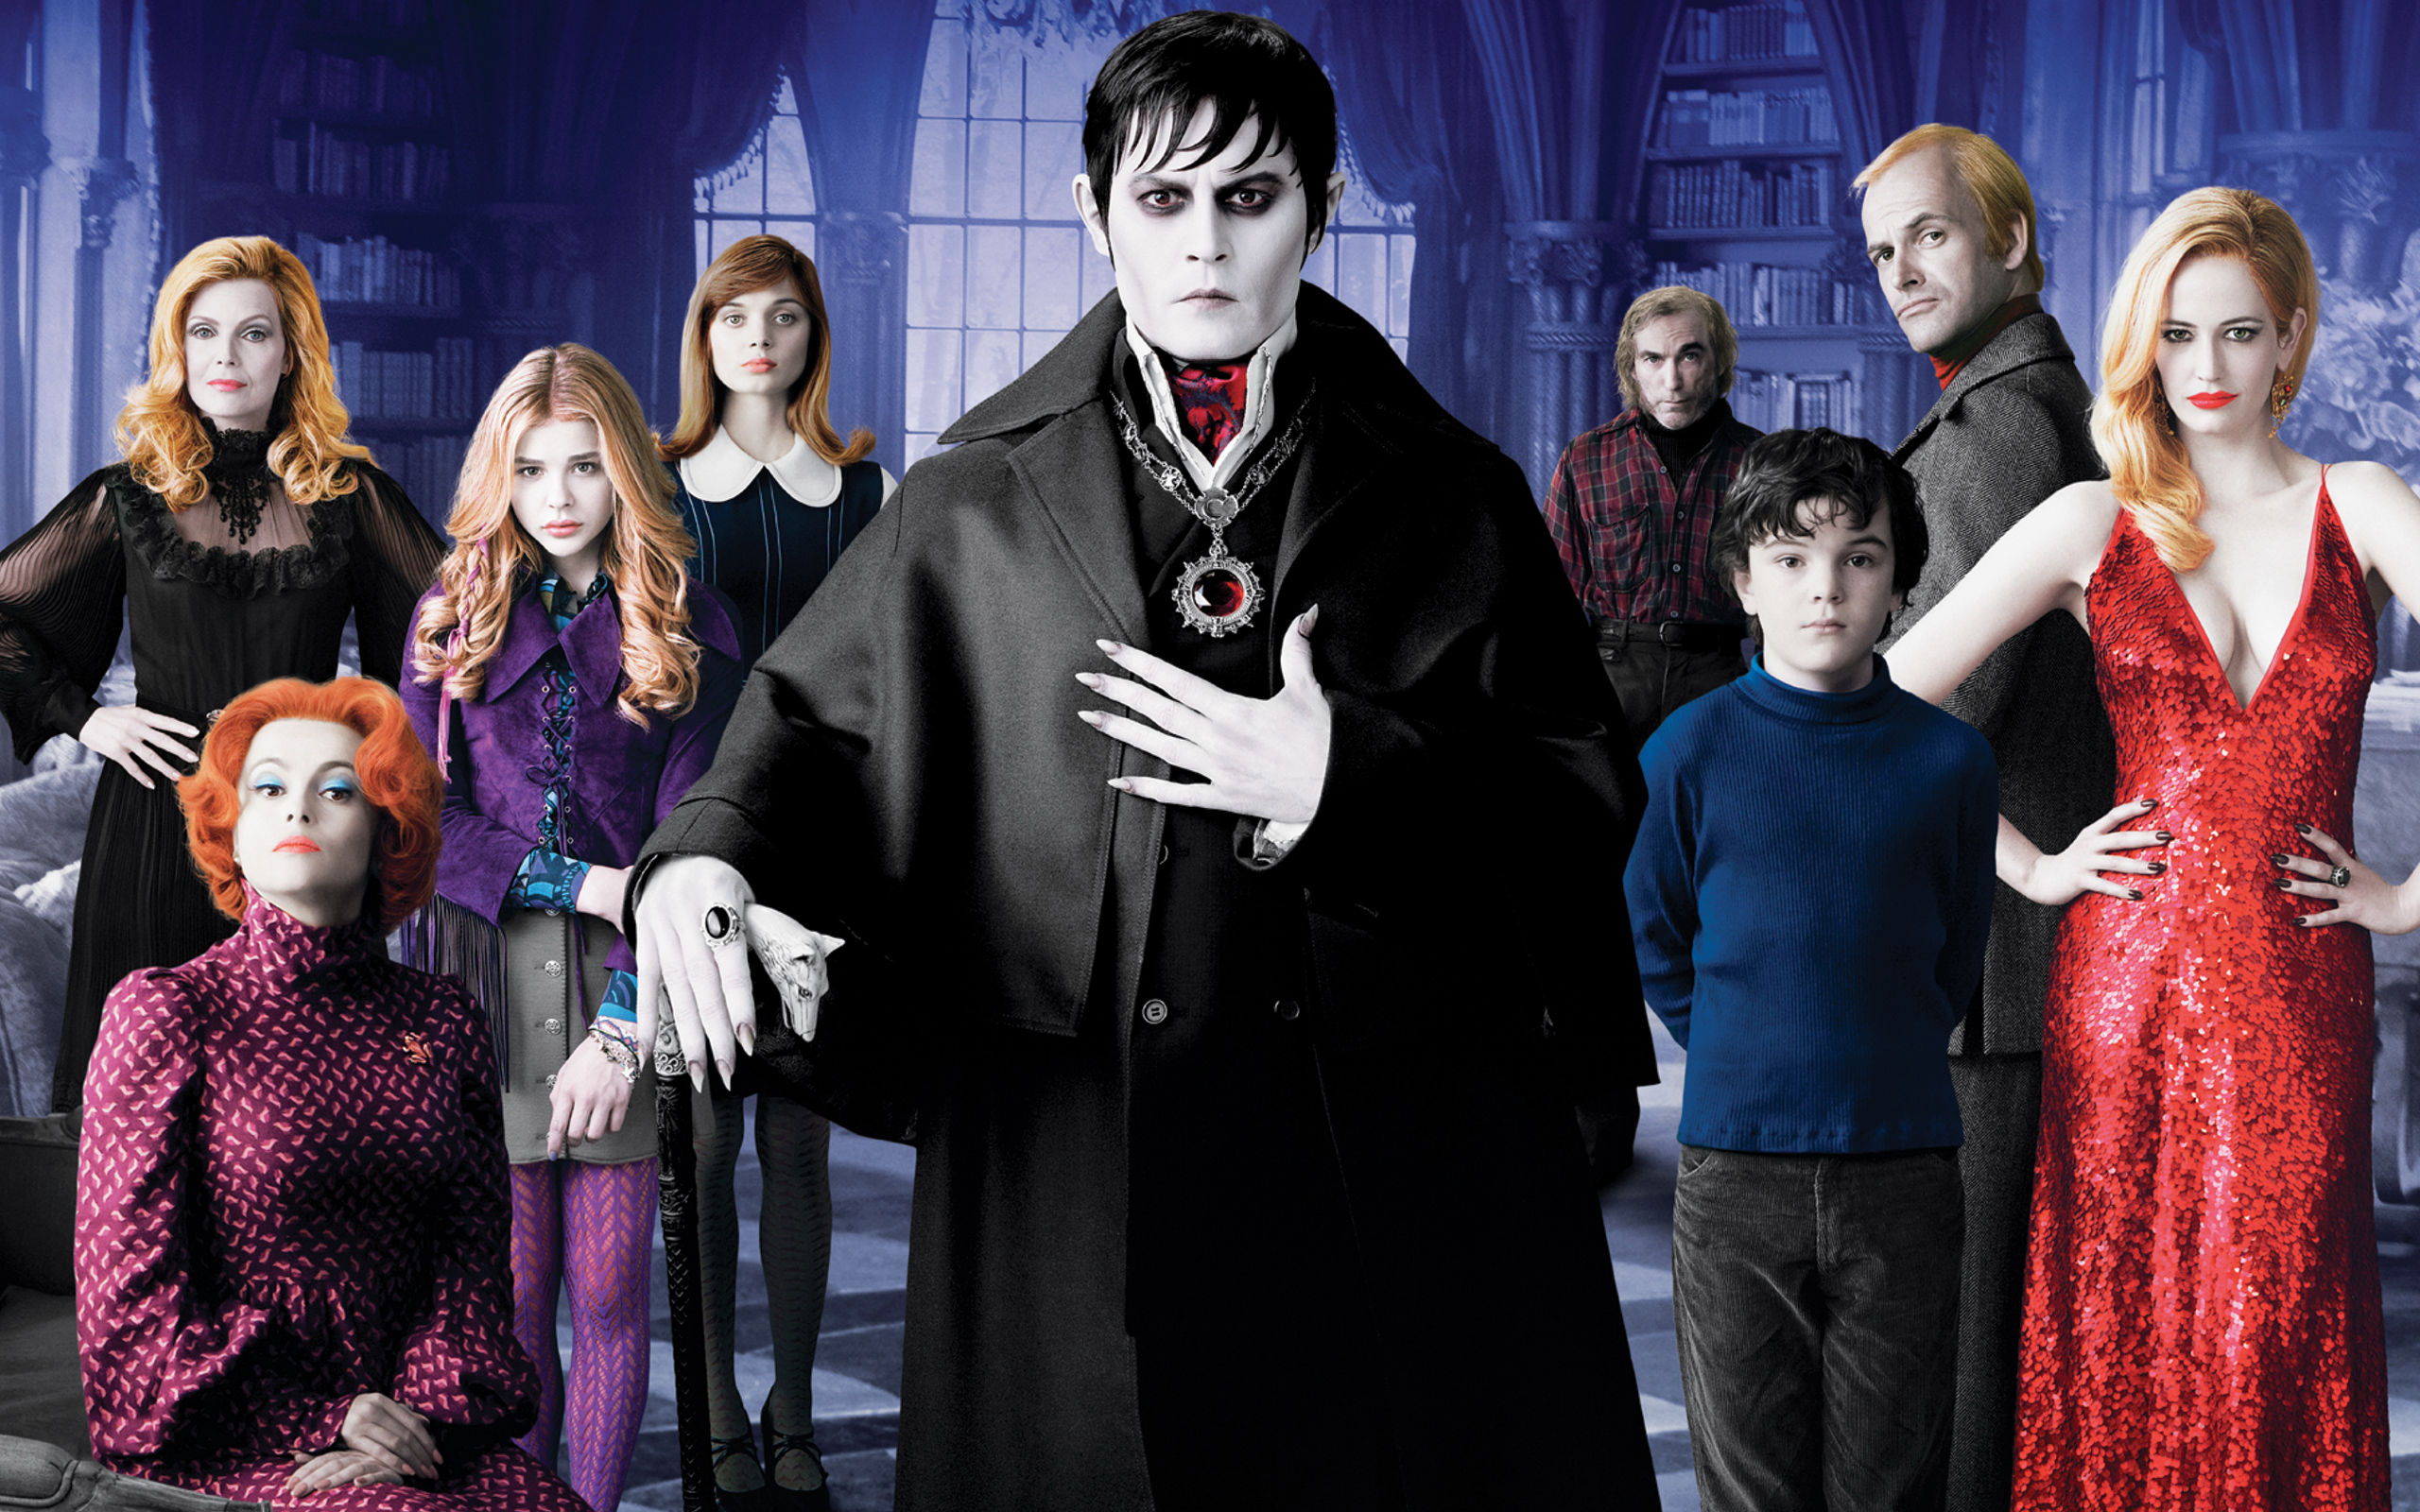 Dark Shadows Movie Wallpapers HD Wallpapers 2560x1600